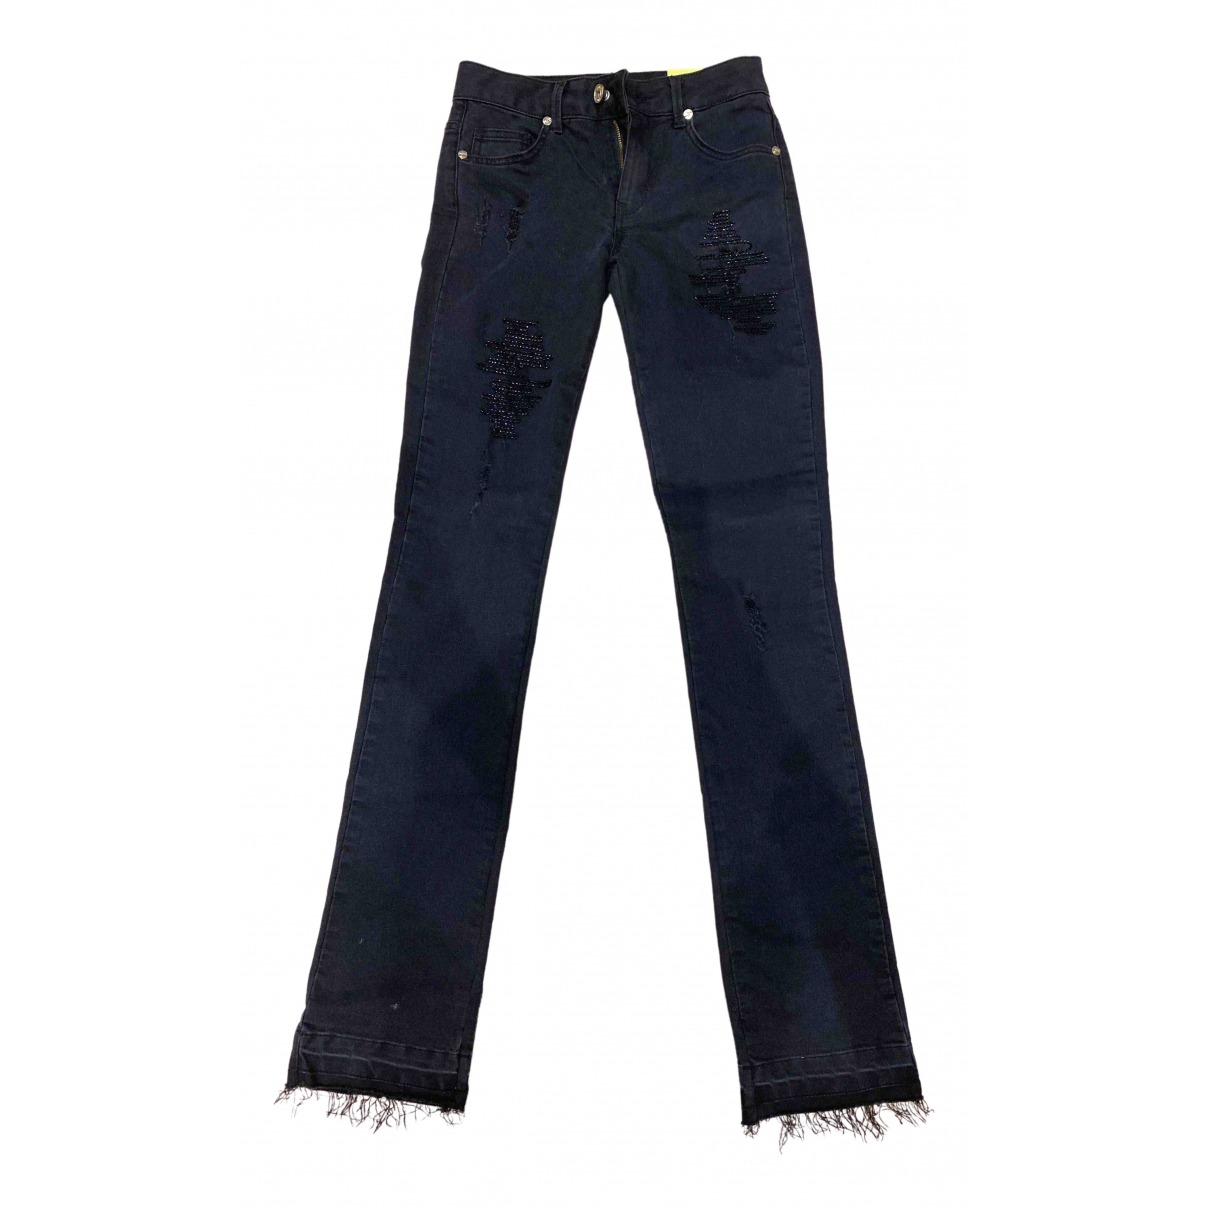 Blumarine \N Black Denim - Jeans Jeans for Women 25 US